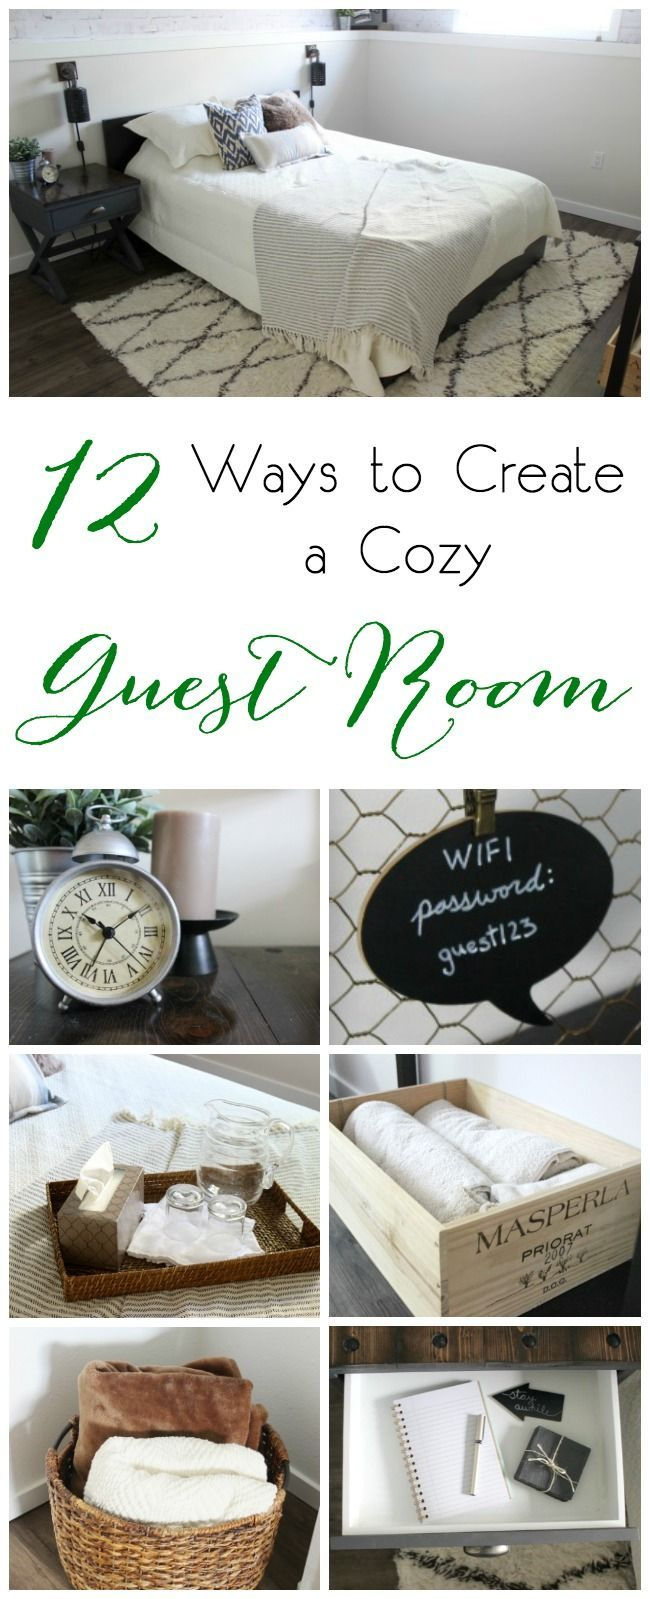 12 Ways to Create a Cozy Guest Room 12 great tips for taking your guest space to the next level. Learn how to create a welcoming, cozy guest room just by adding a few special items! #modernrusticbedroom